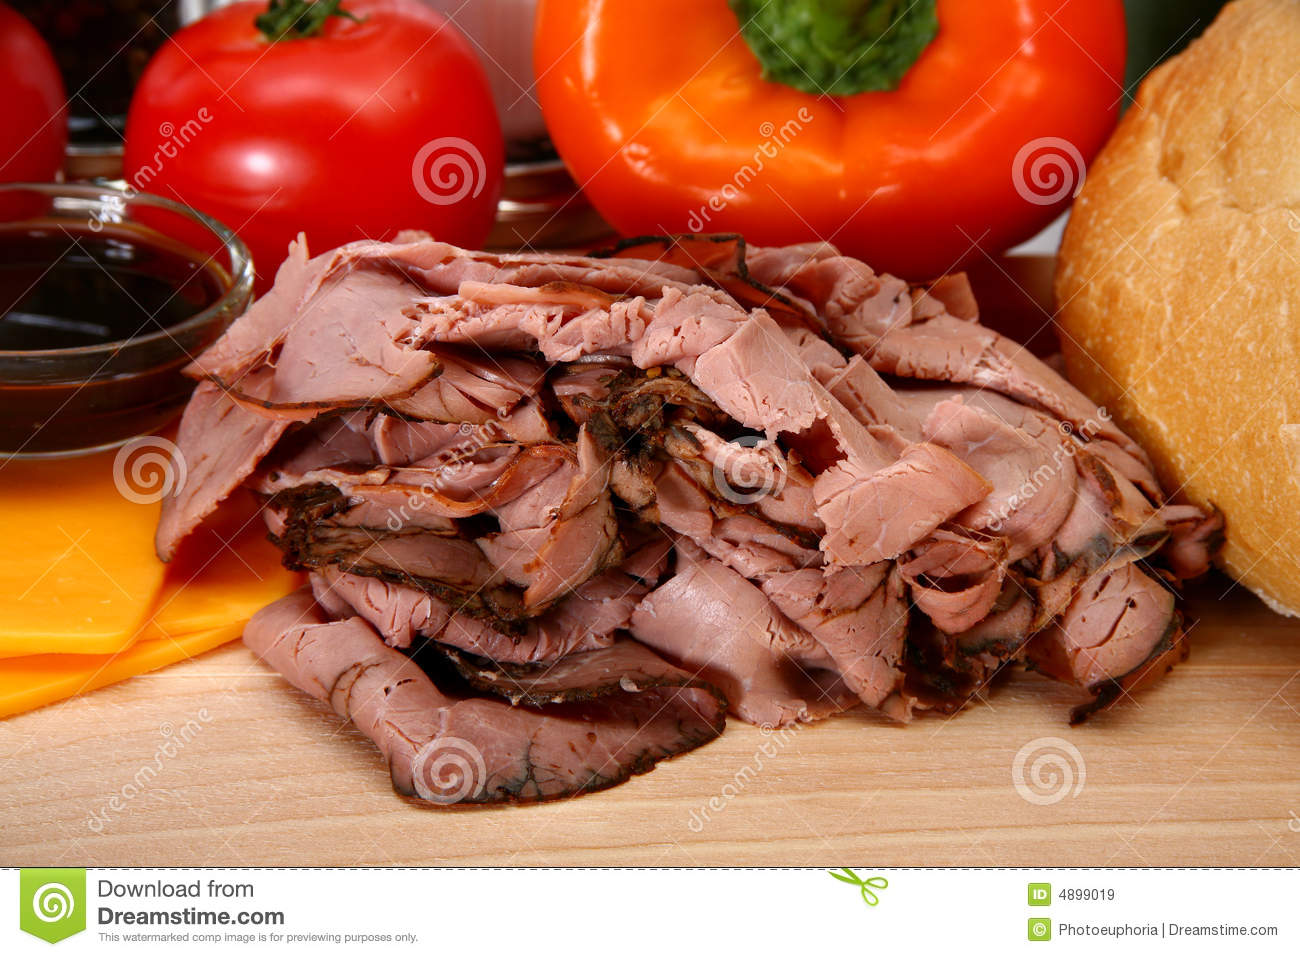 how to cook deli sliced roast beef